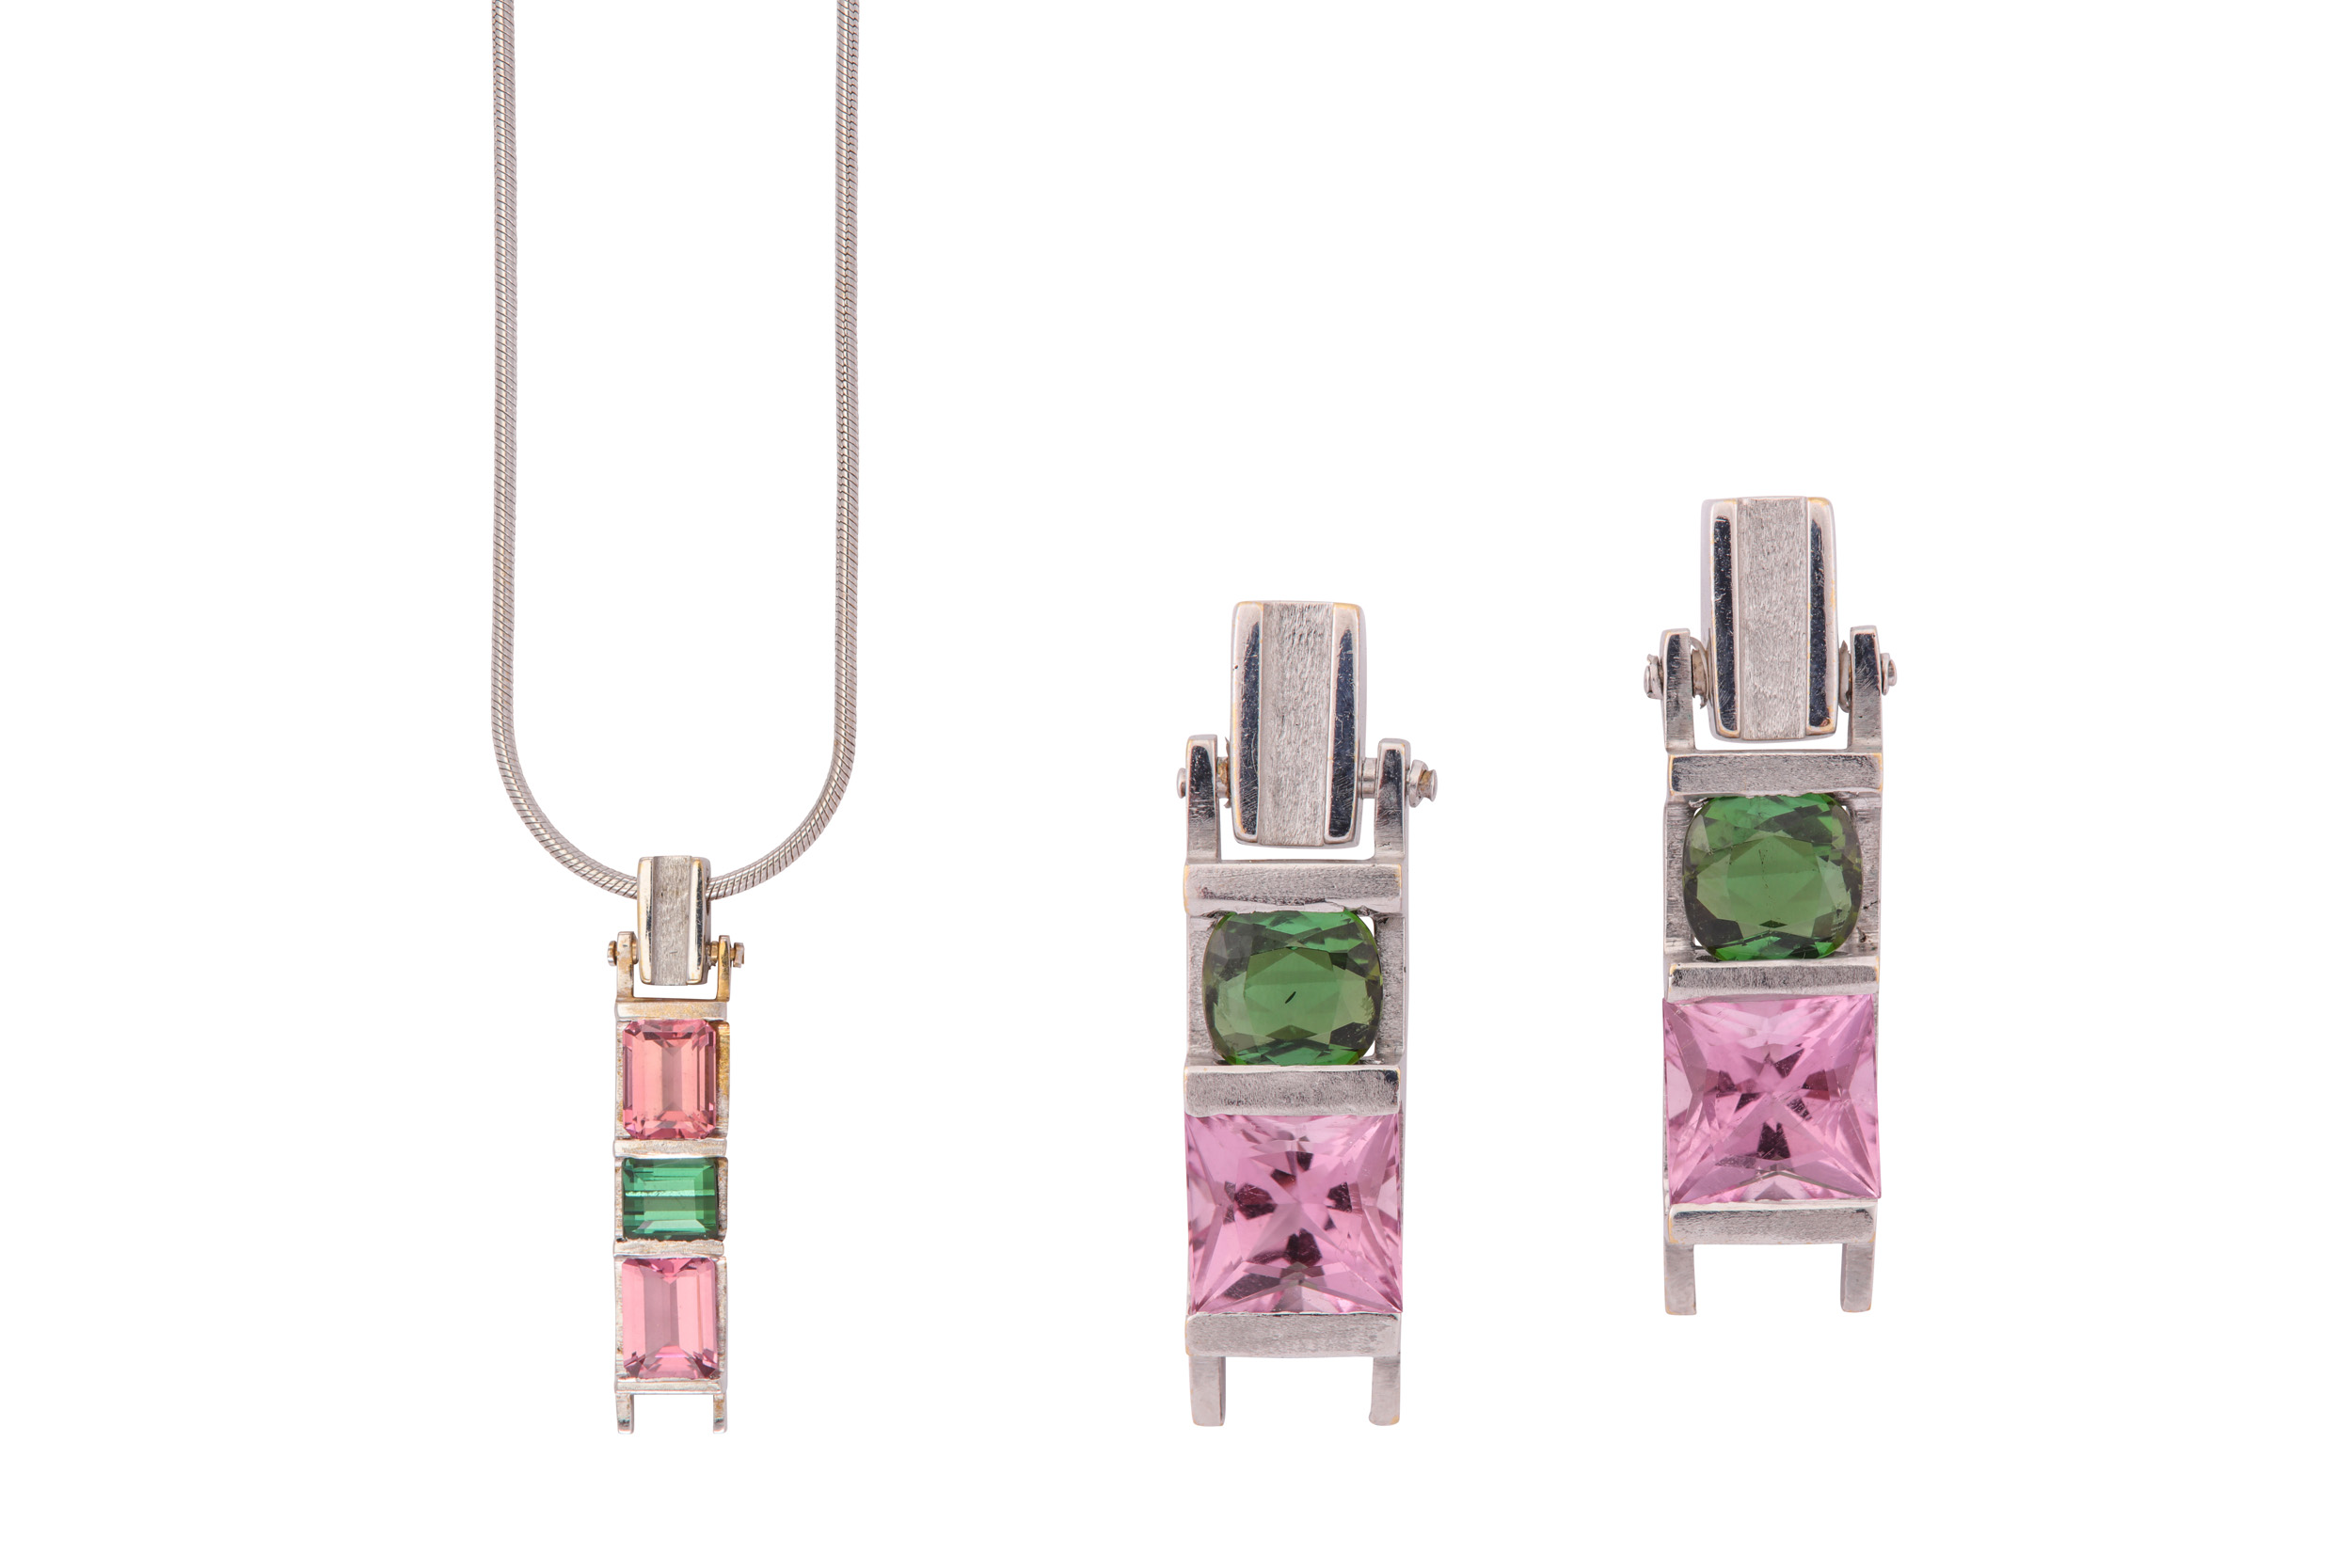 Lot 51 - A tourmaline pendant necklace and earring suite, by Kerry Richardson